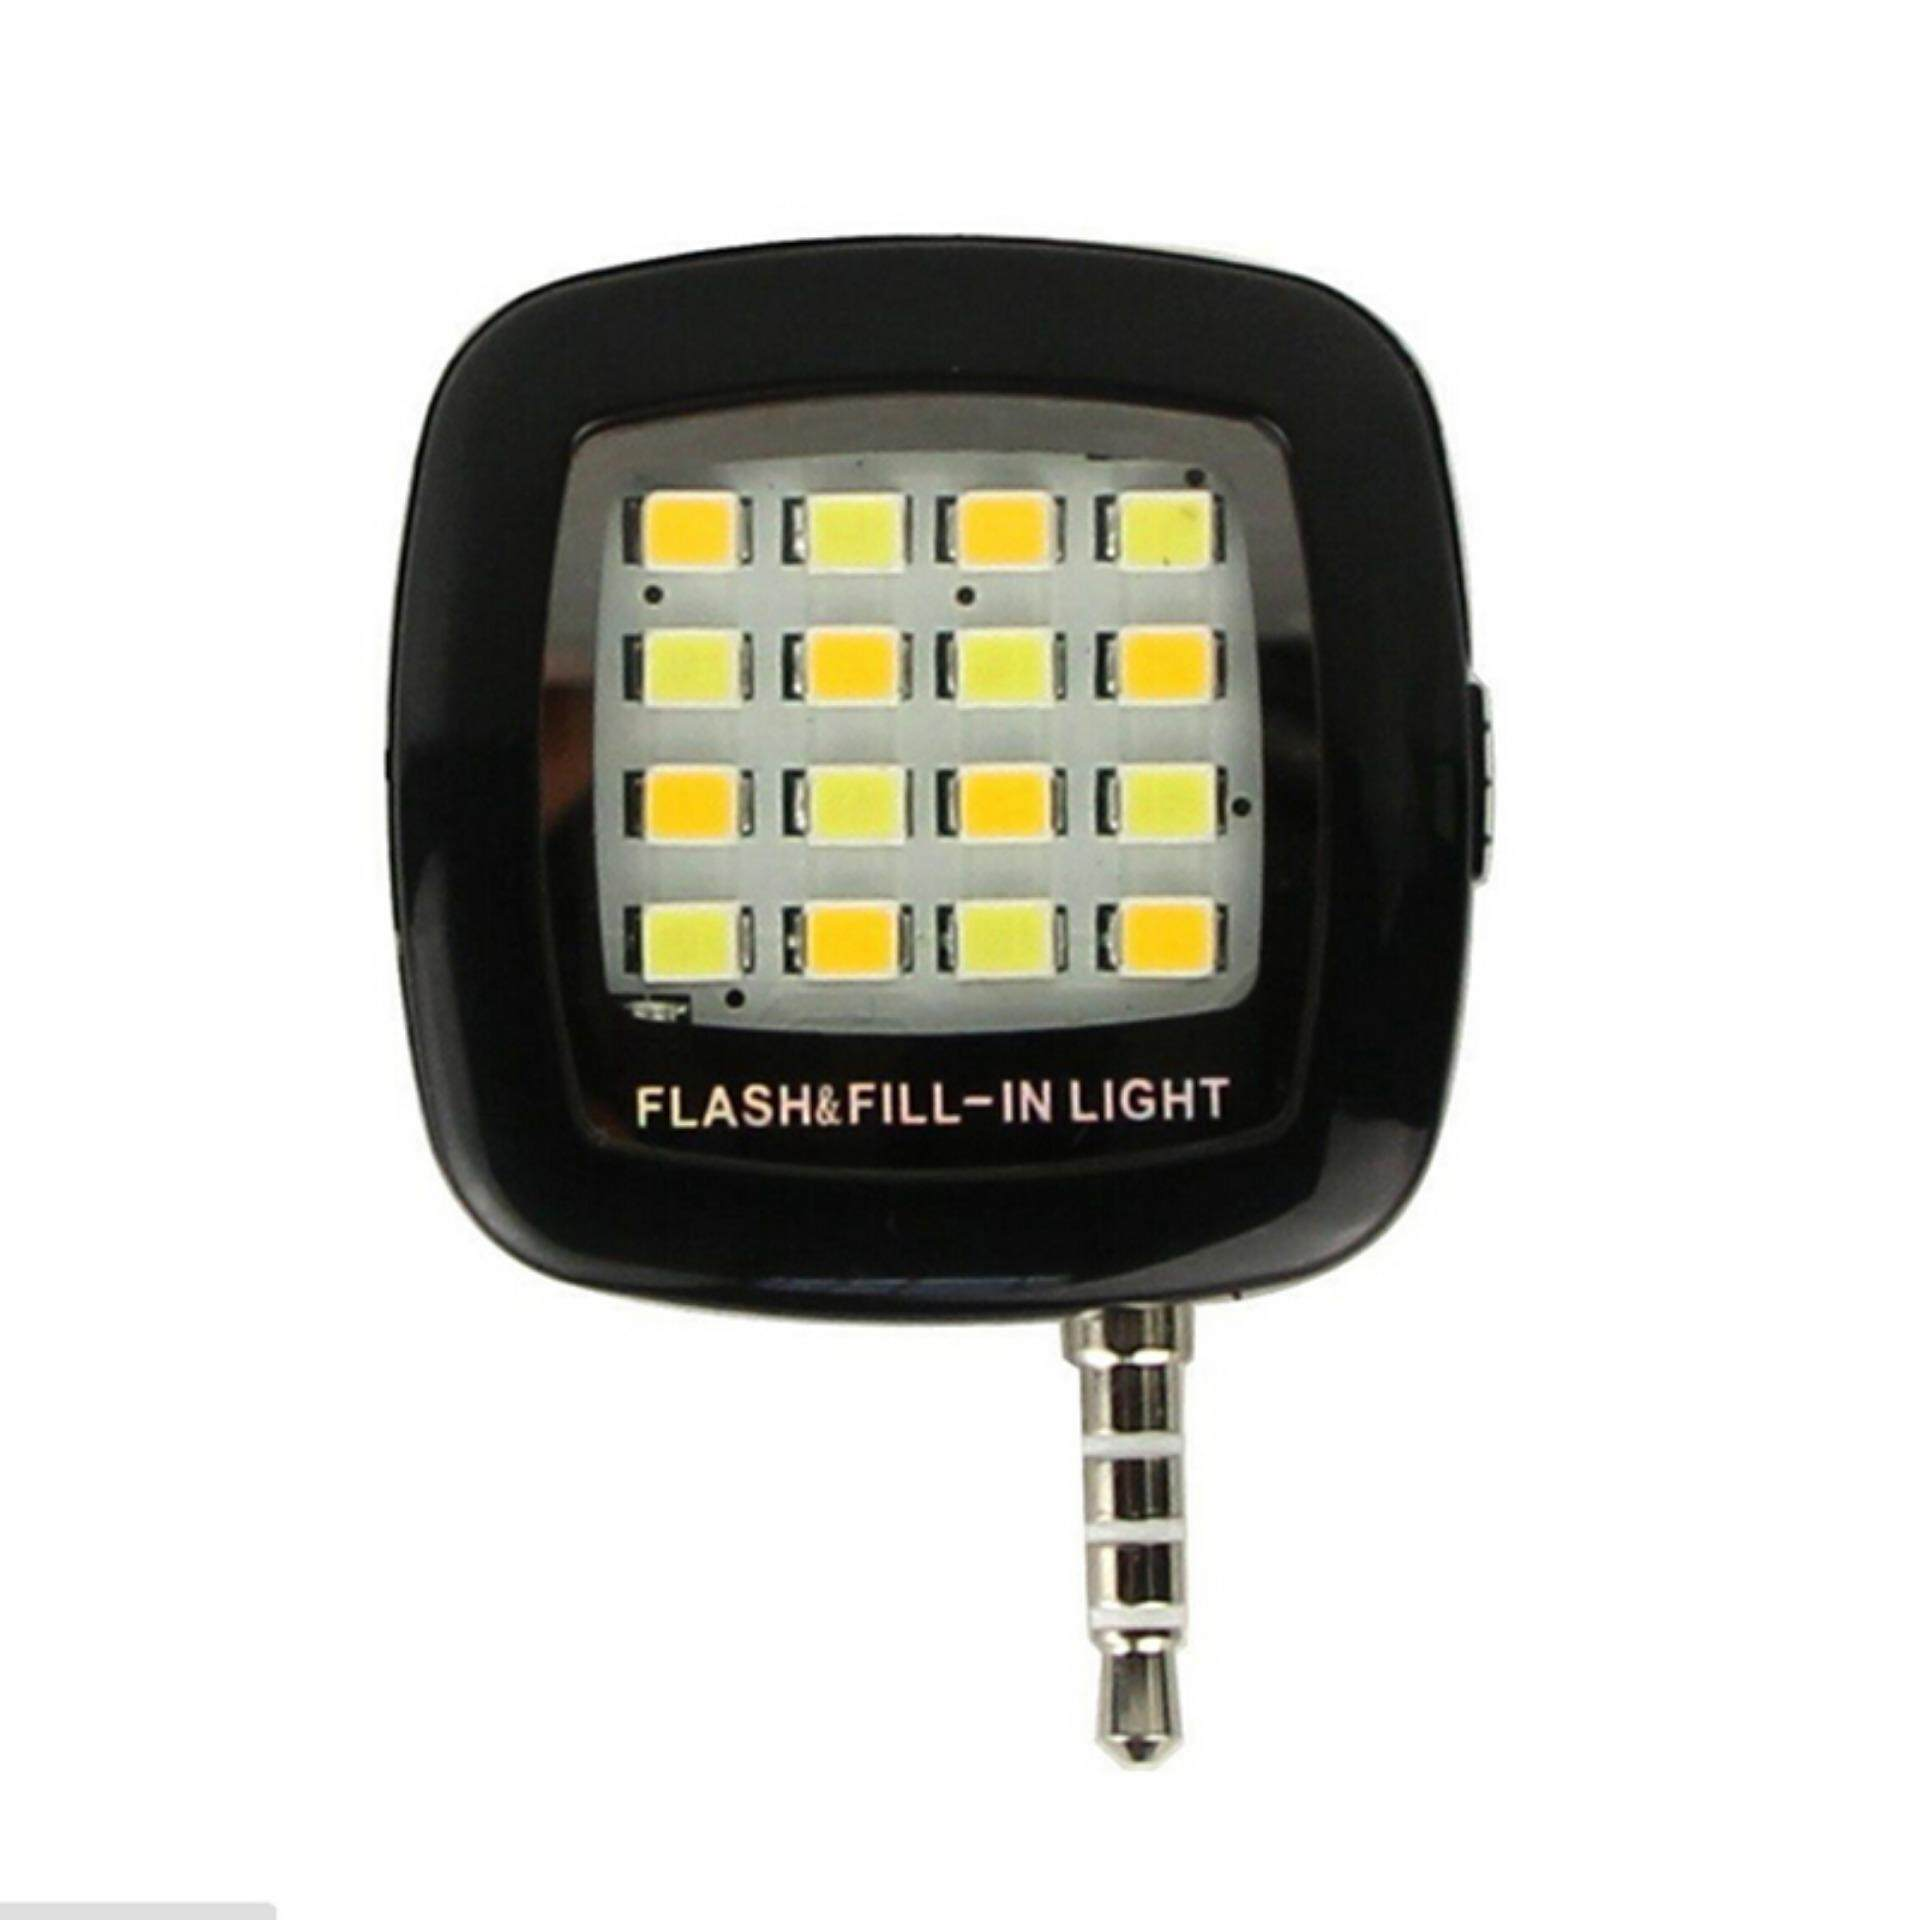 3.5mm Jack Smart Selfie 16 LED Camera Flash Light For IOS Android iPhone 5s 6 6+ Black